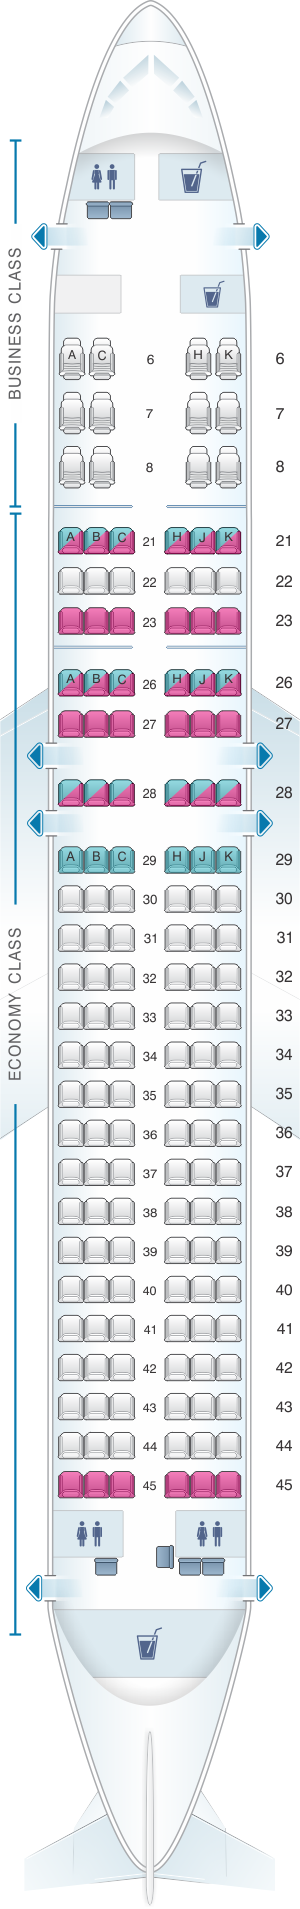 Seat map for Royal Brunei Airlines Airbus A320 Neo